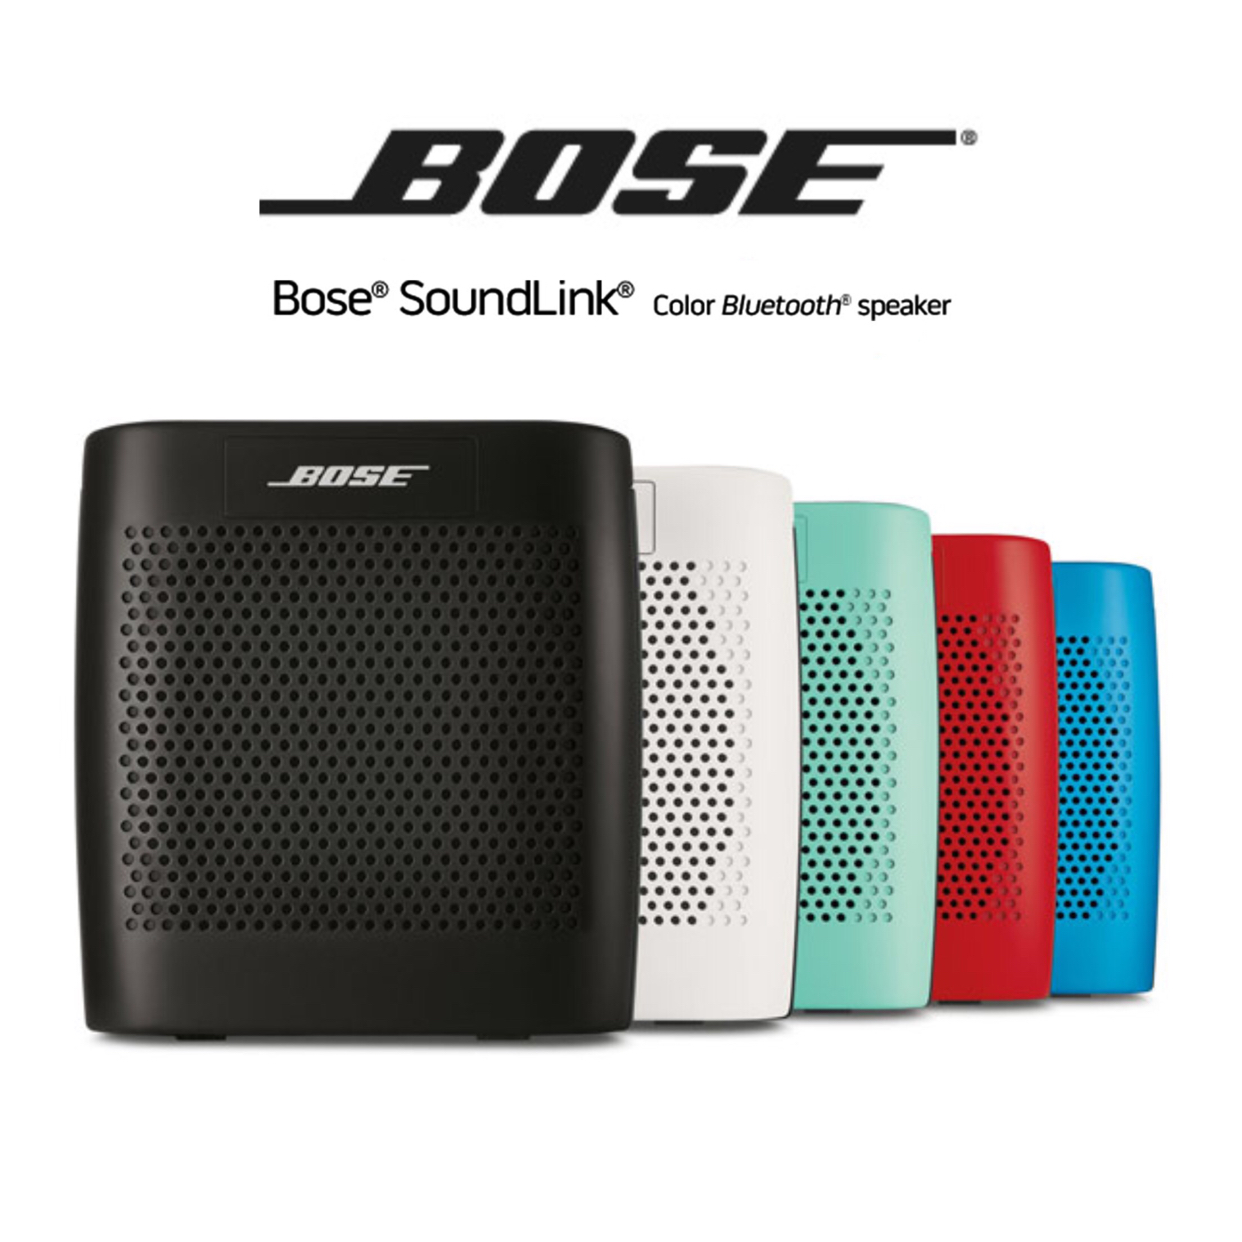 bose altavoz al por mayor